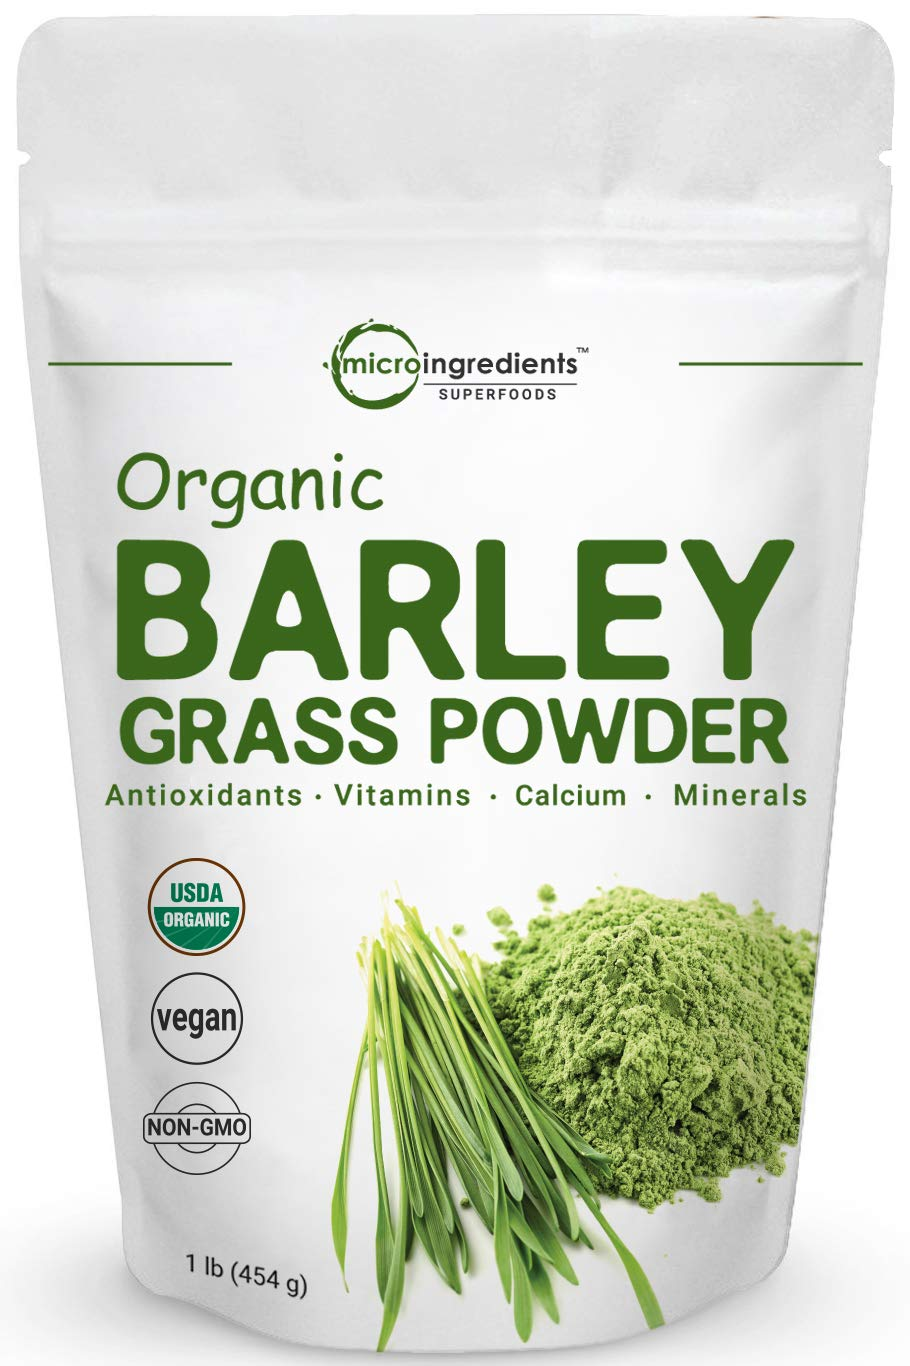 Sustainably US Grown, Organic Barley Grass Powder, 1 Pound, Rich Fibers, Immune Vitamins, Minerals, Antioxidants and Protein, Support Immune System and Digestion Function, Vegan Friendly.